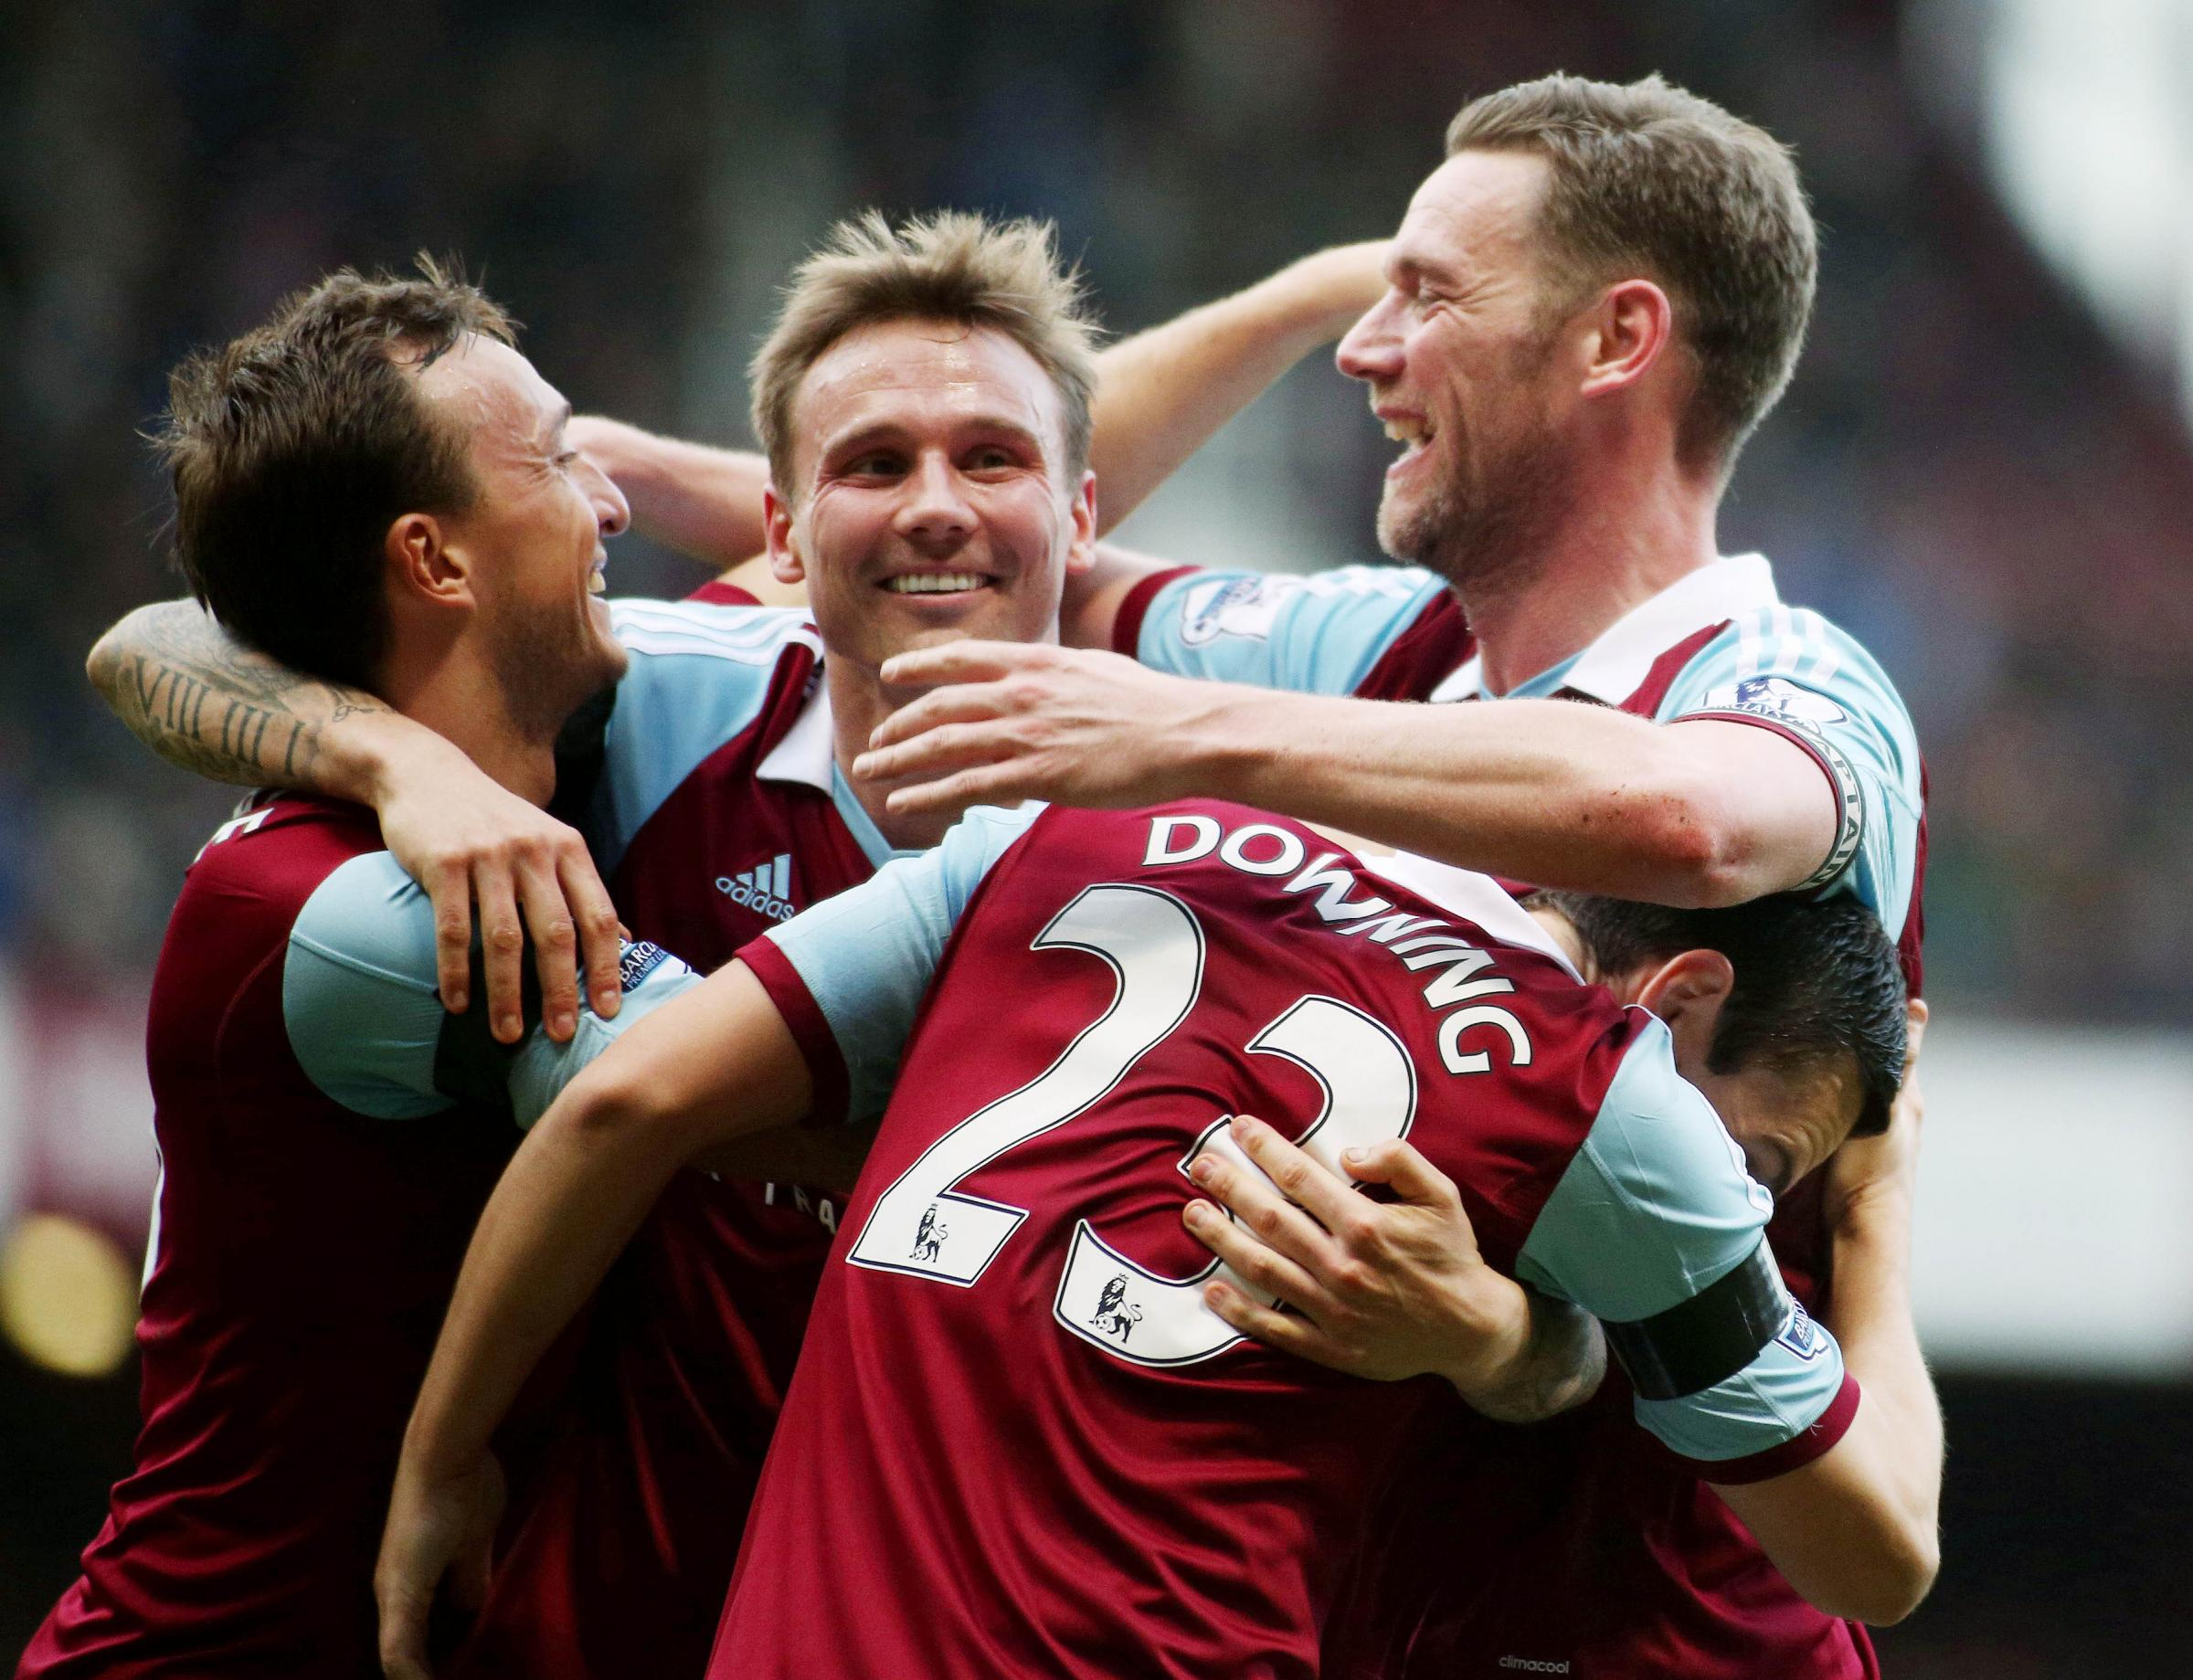 West Ham's Kevin Nolan celebrates scoring their third goal against Southampton. Picture: Action Images